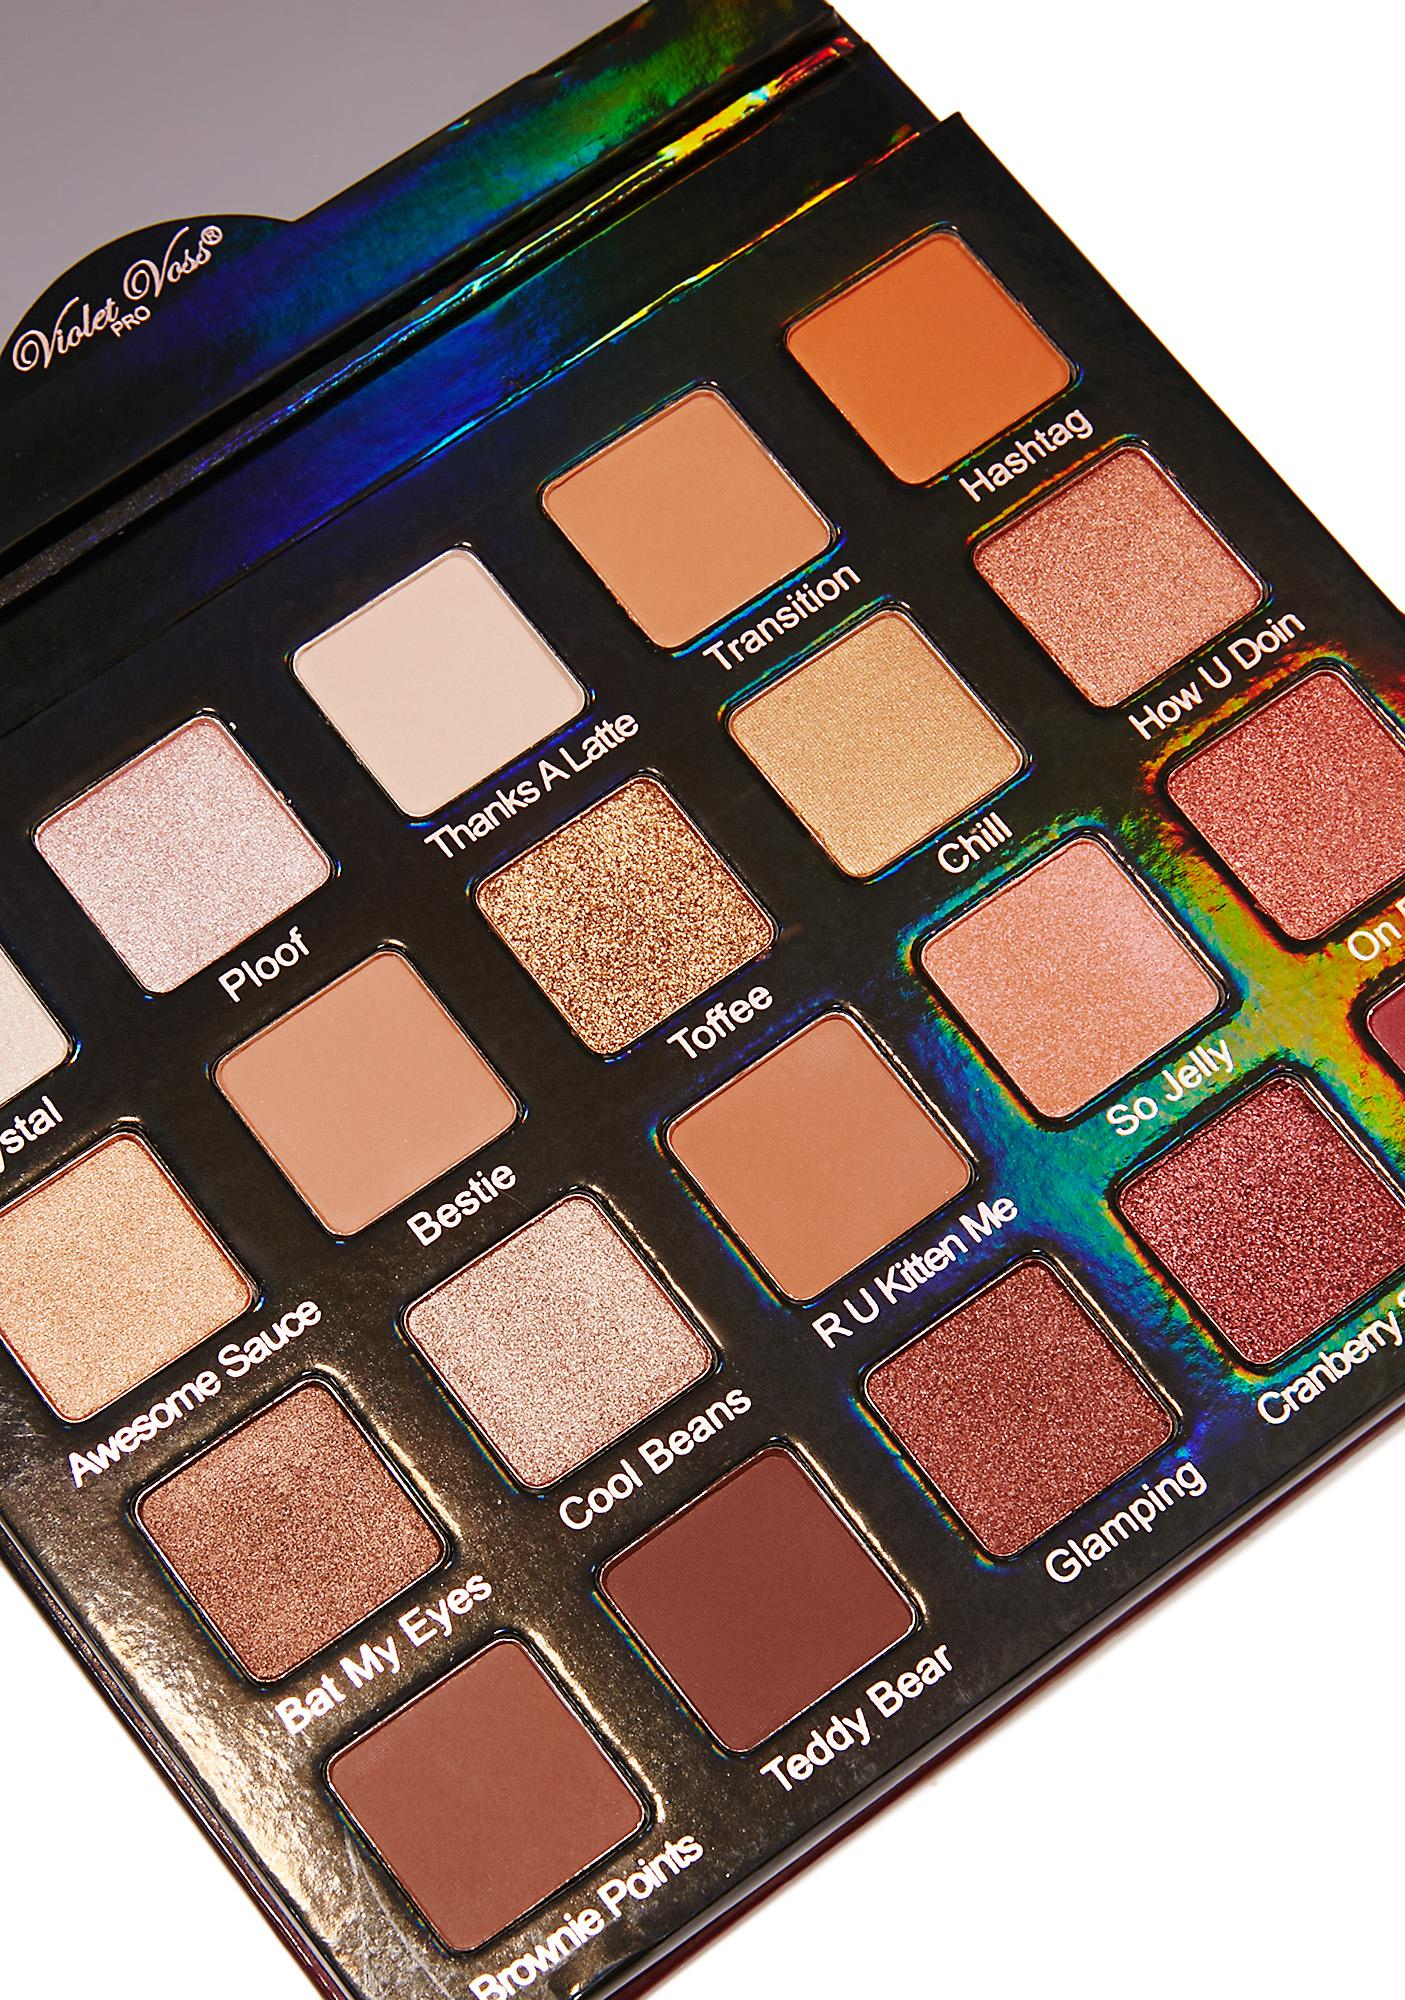 Violet Voss Holy Grail Eyeshadow Palette